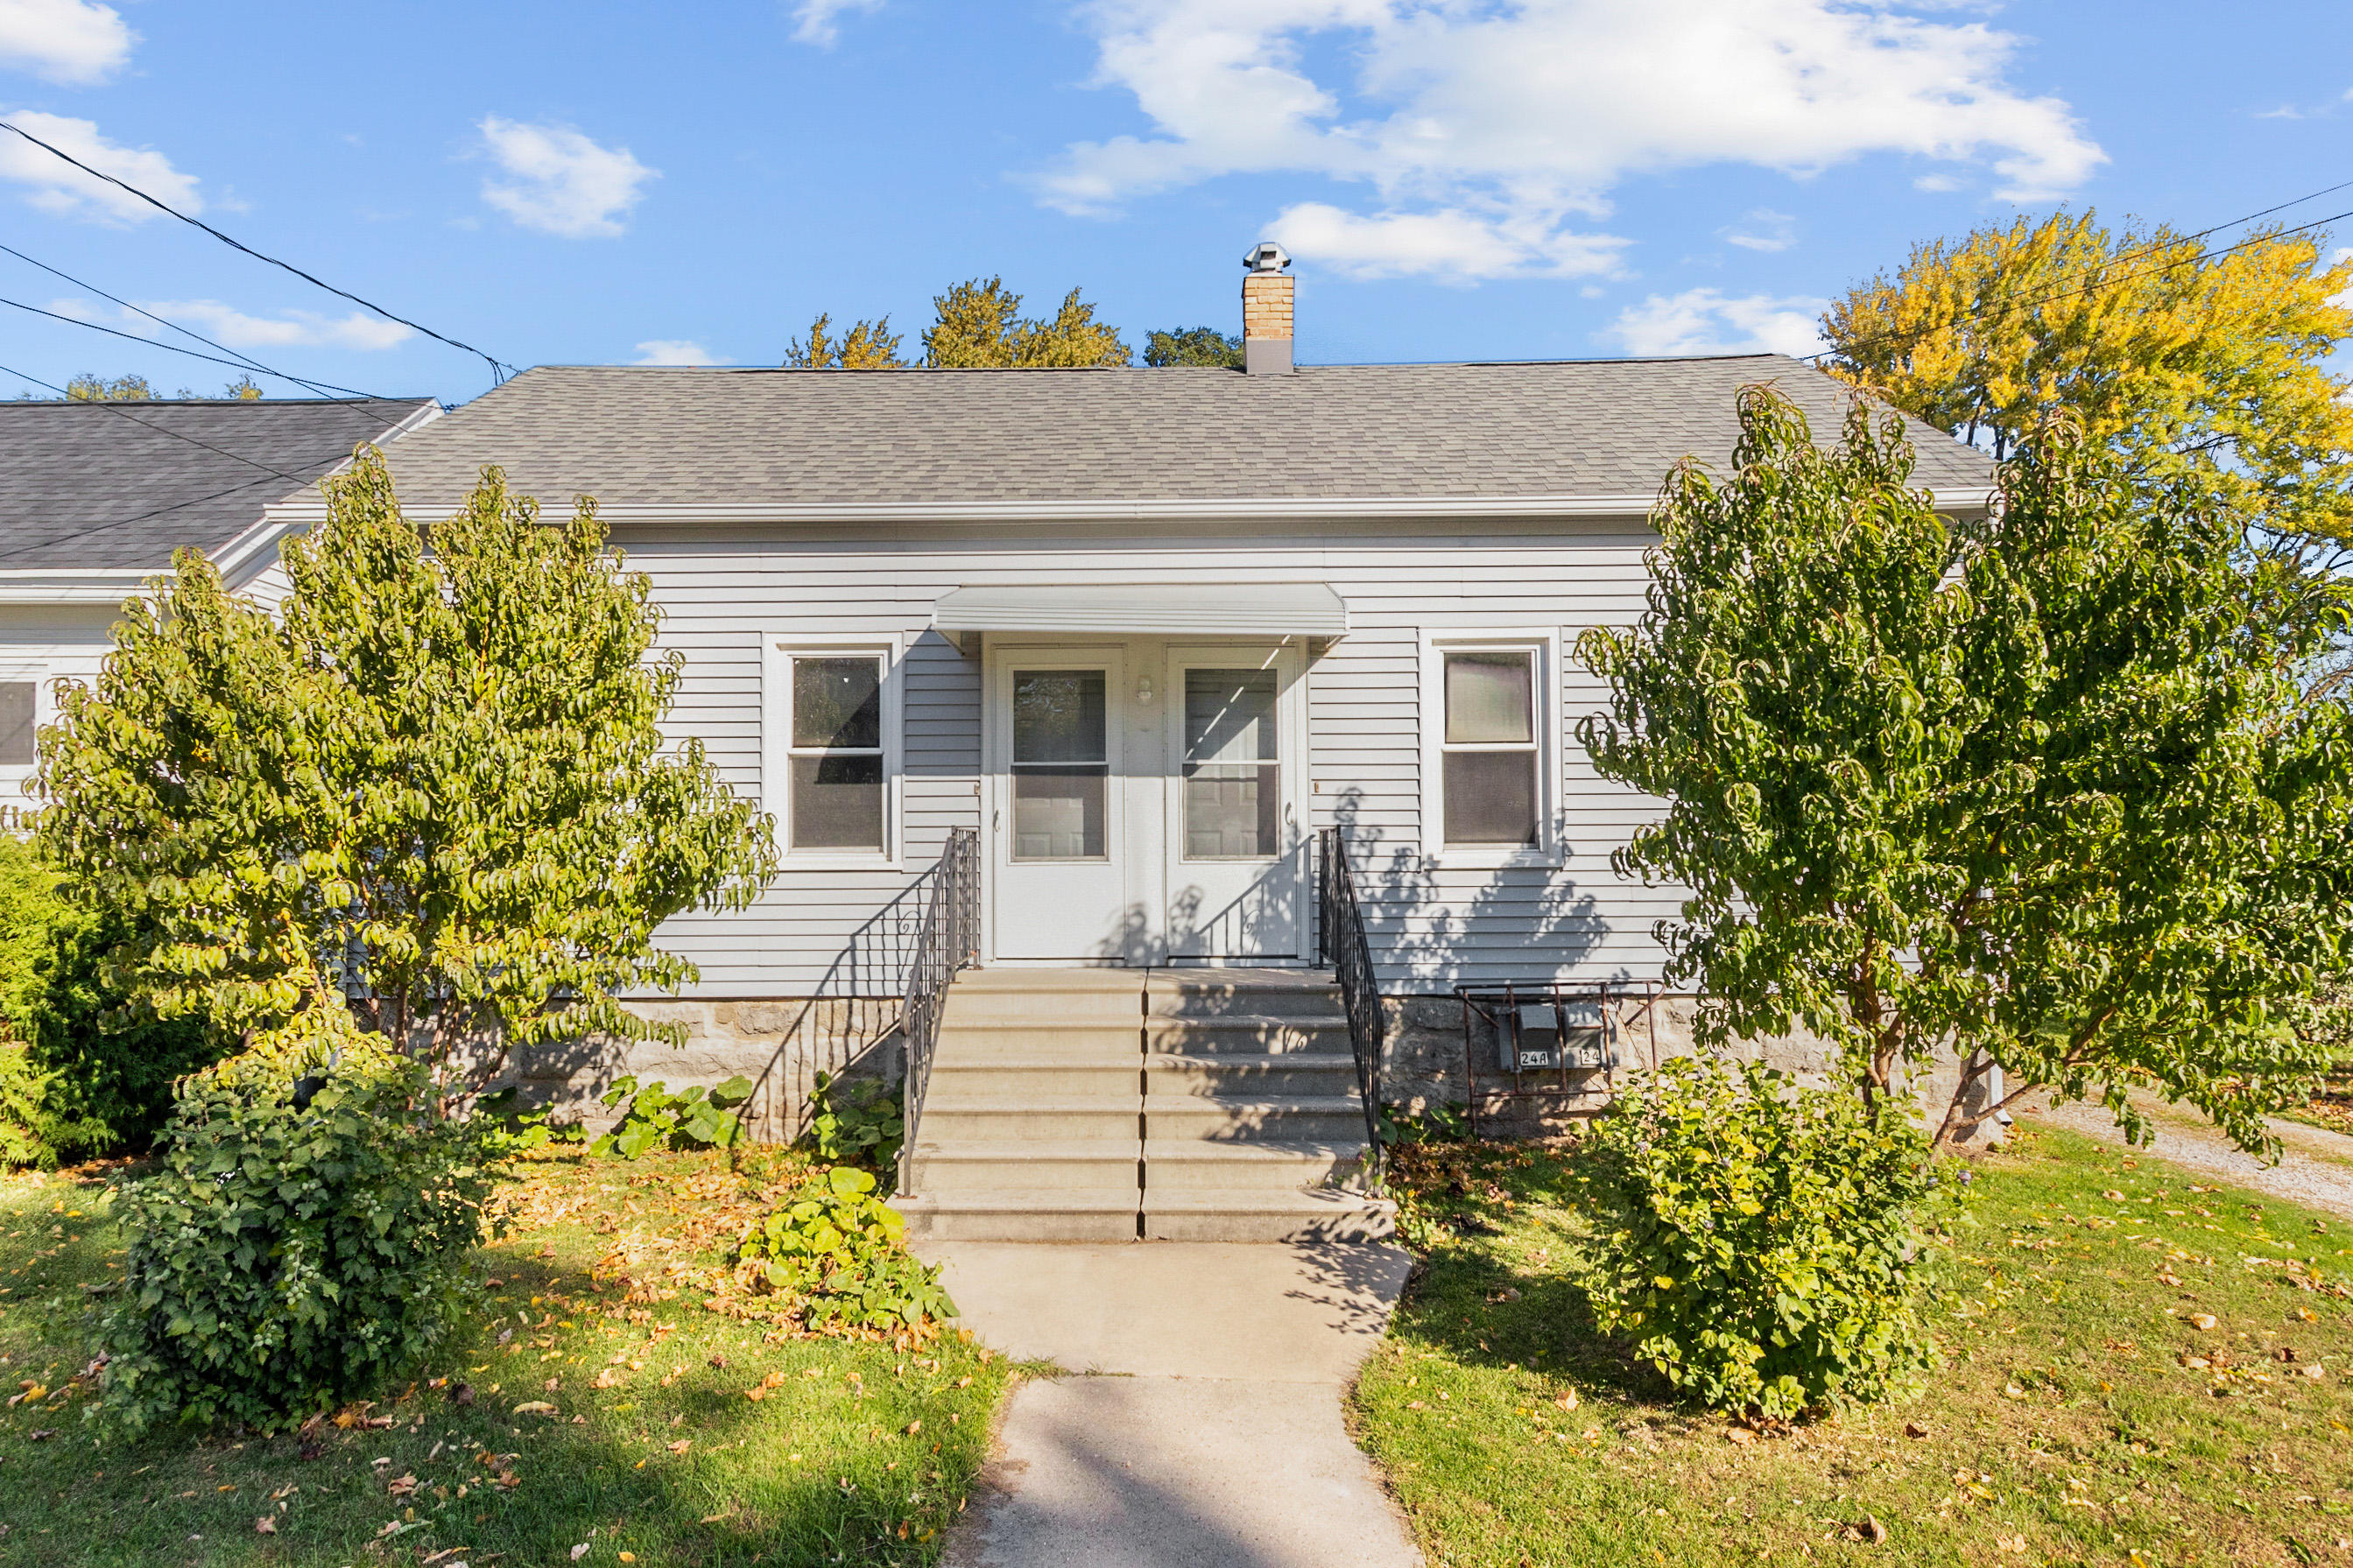 24 11th Ave, Oshkosh, Wisconsin 54902, ,Multi-Family Investment,For Sale,11th Ave,1715569